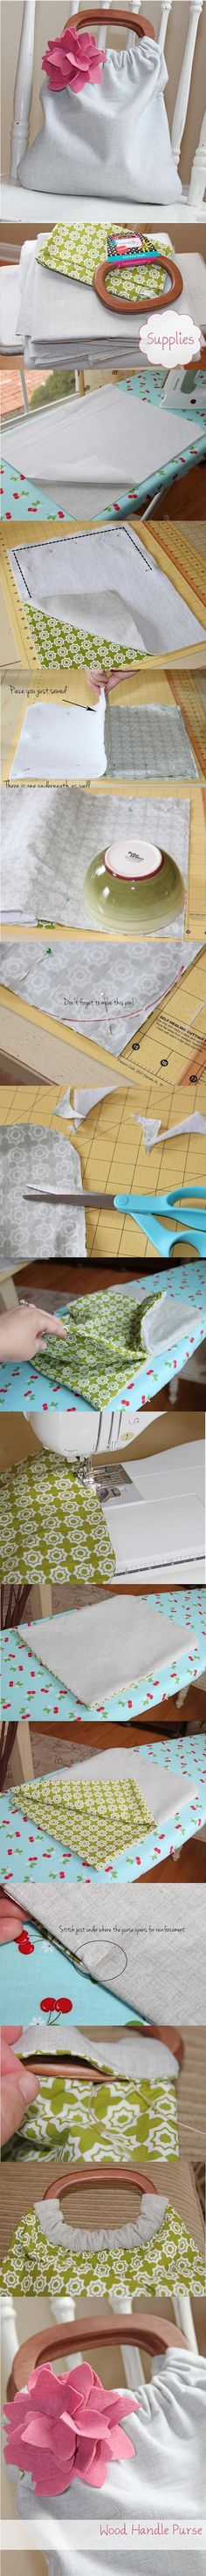 DIY: Bag Made ??With Wooden Handles And Material